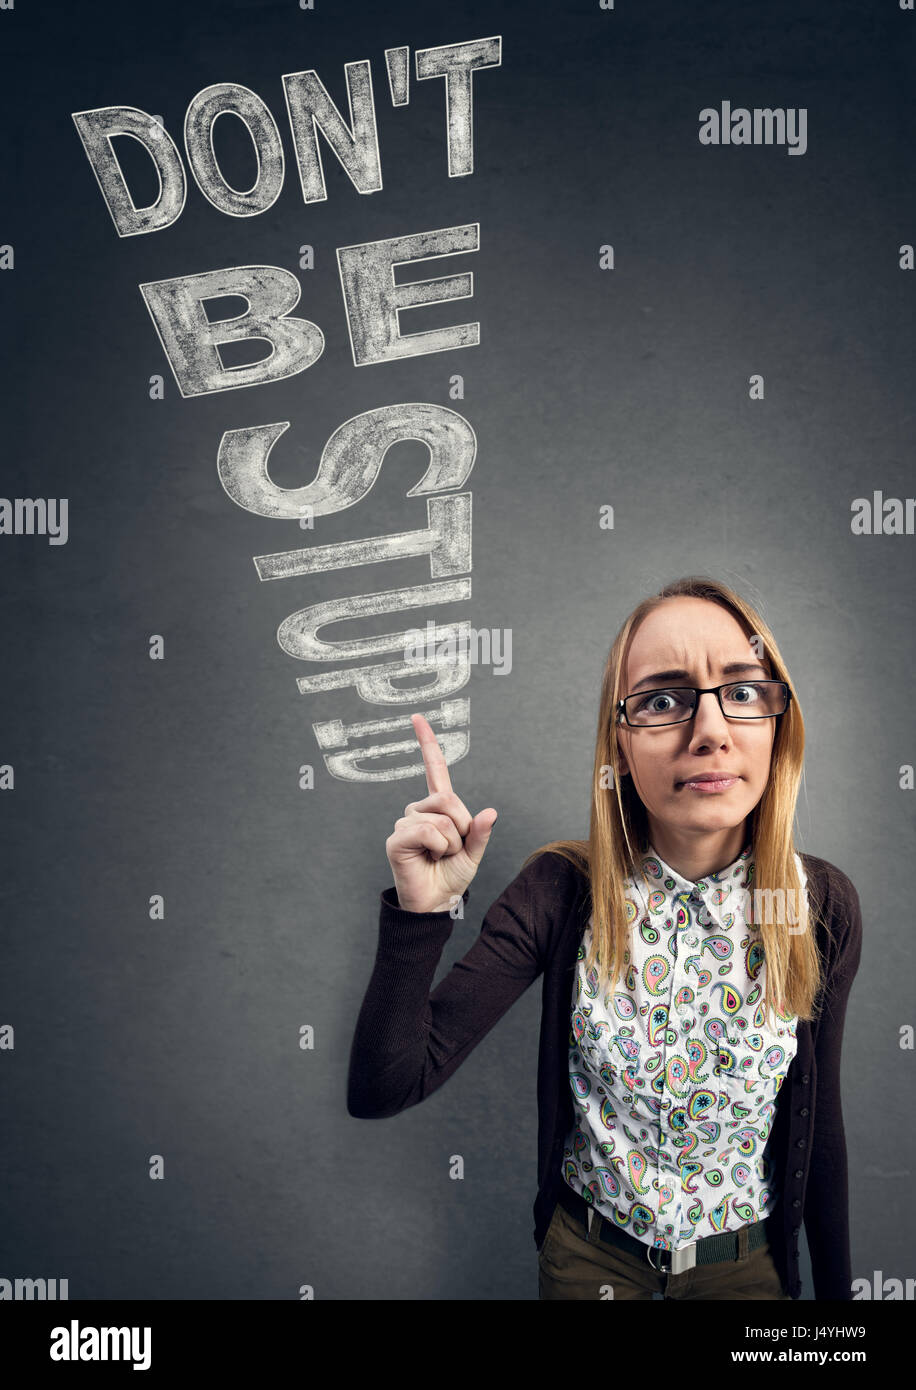 Schoolgirl nerd confronts ignorance with words don't be stupid - Stock Image